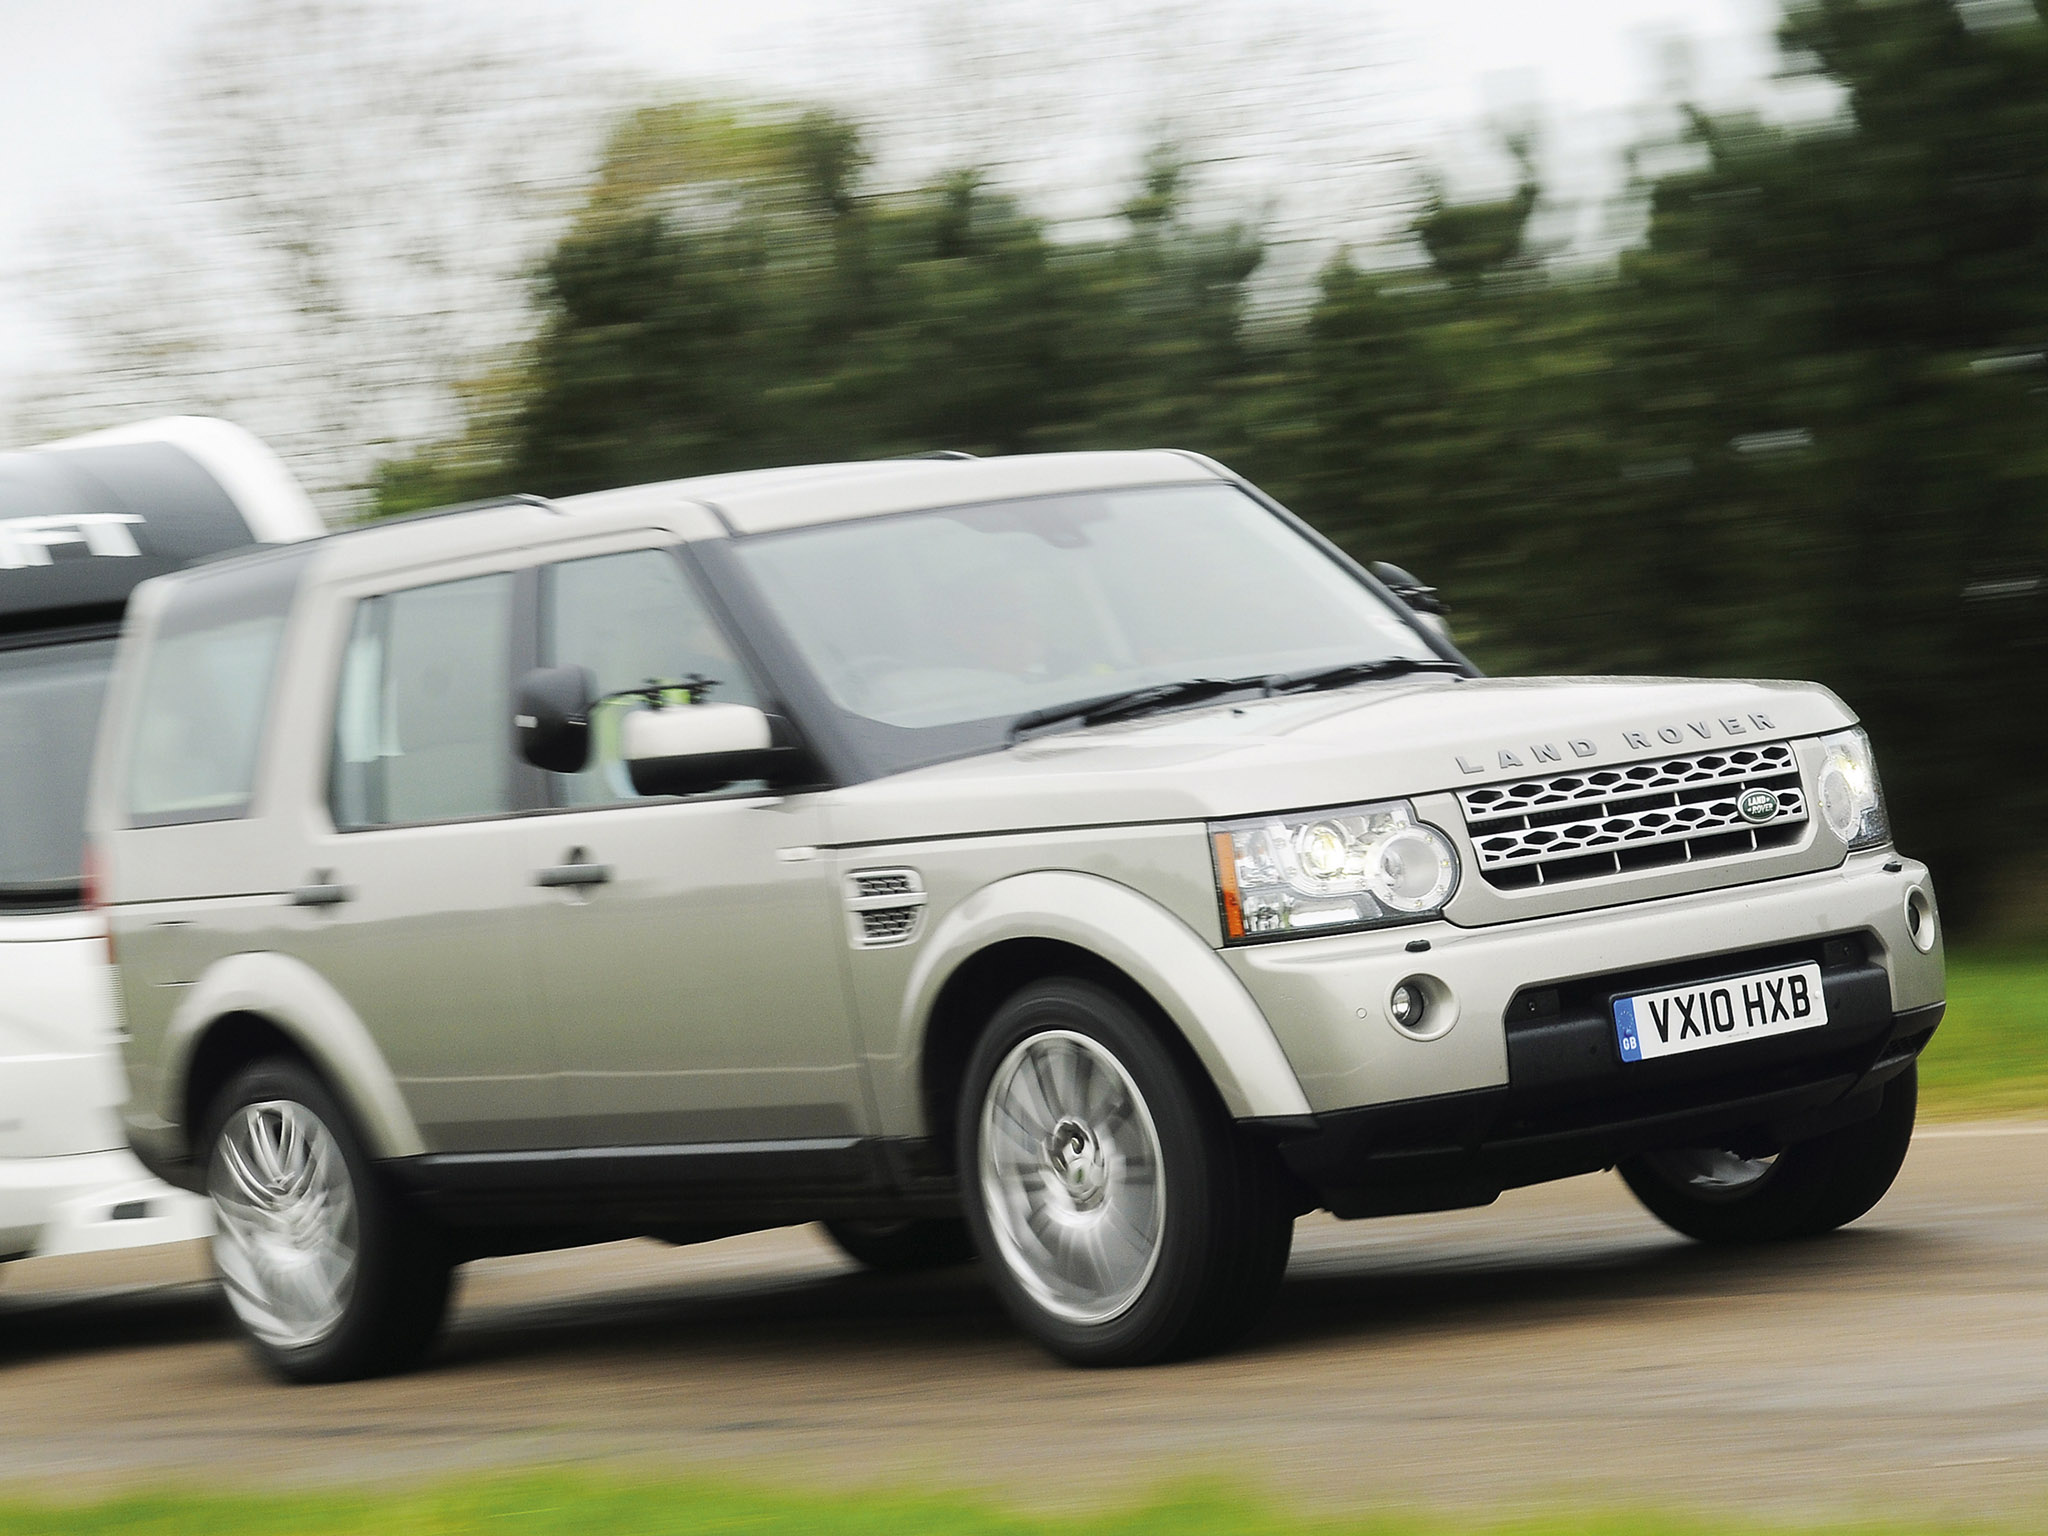 Discovery Land Rover >> Land Rover Discovery 4 2011 Land Rover Discovery 4 2011 ...